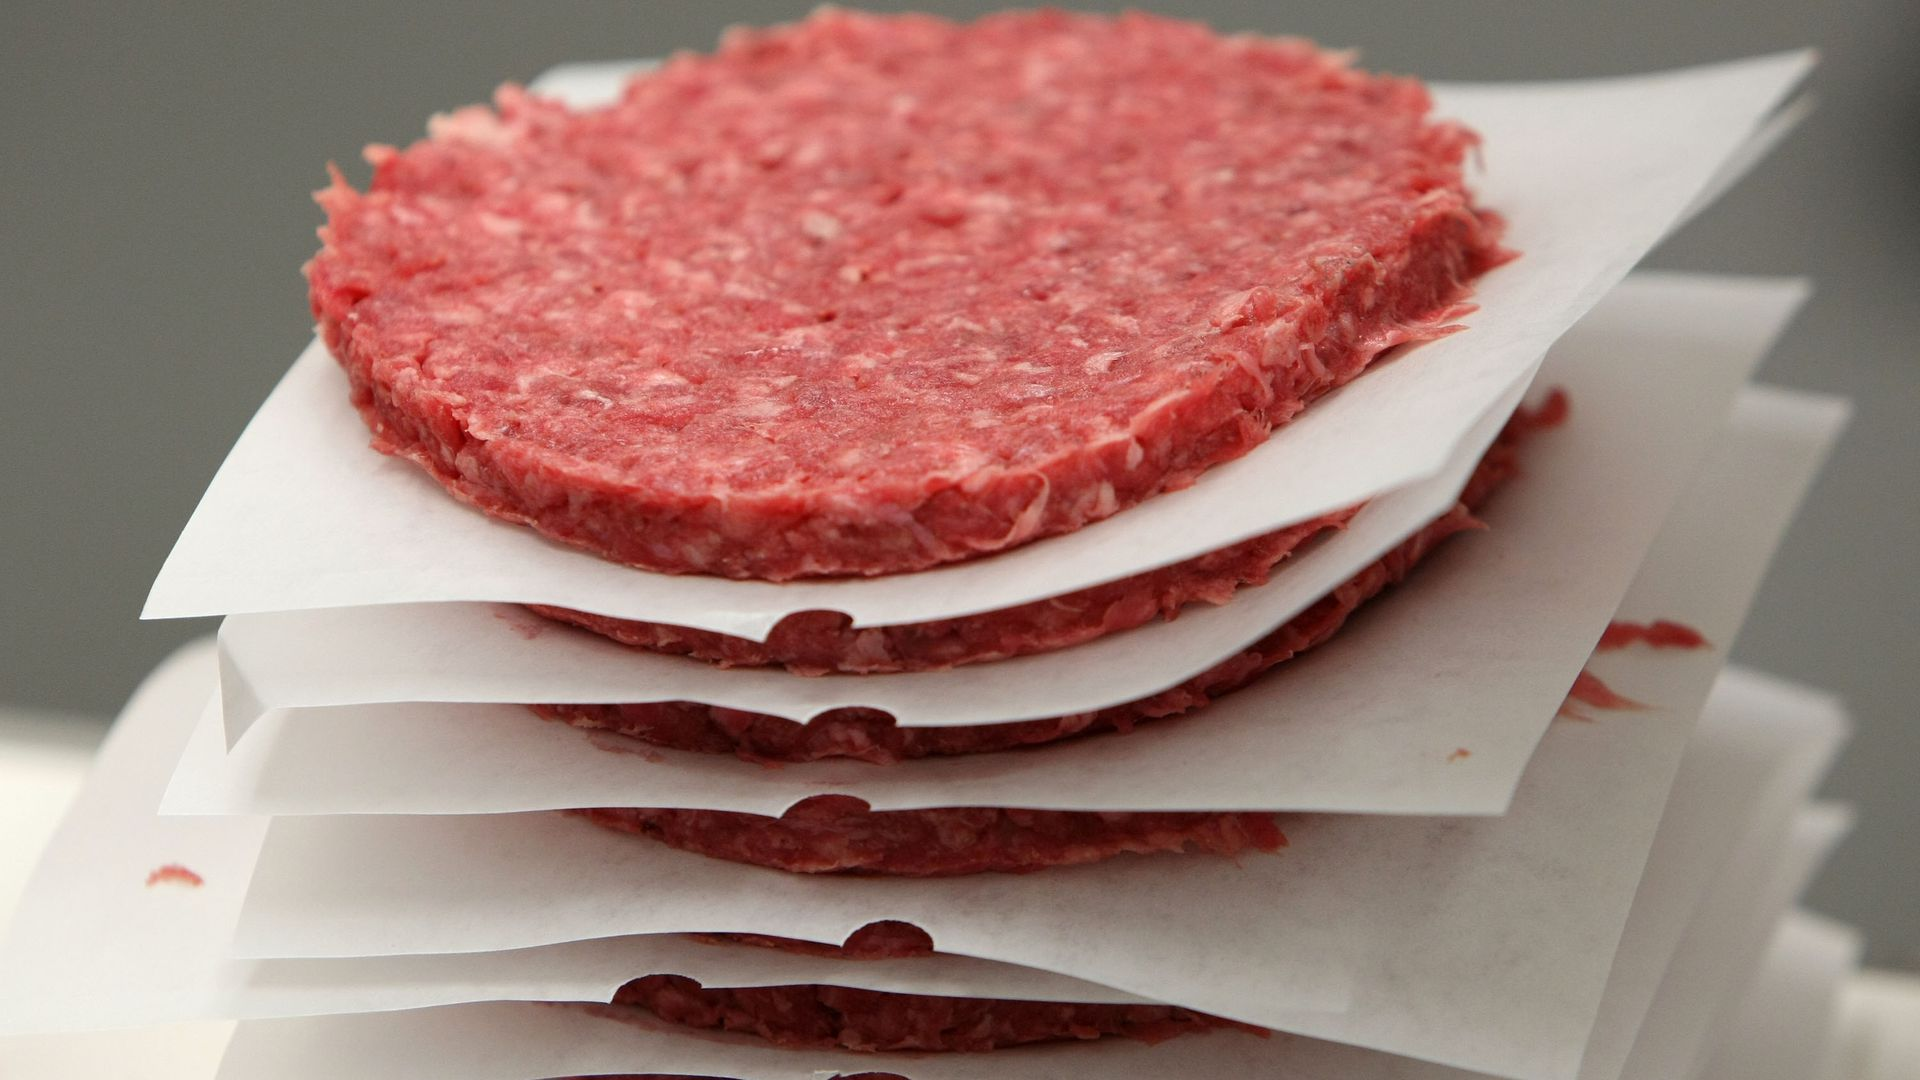 A stack of raw ground beef patties.